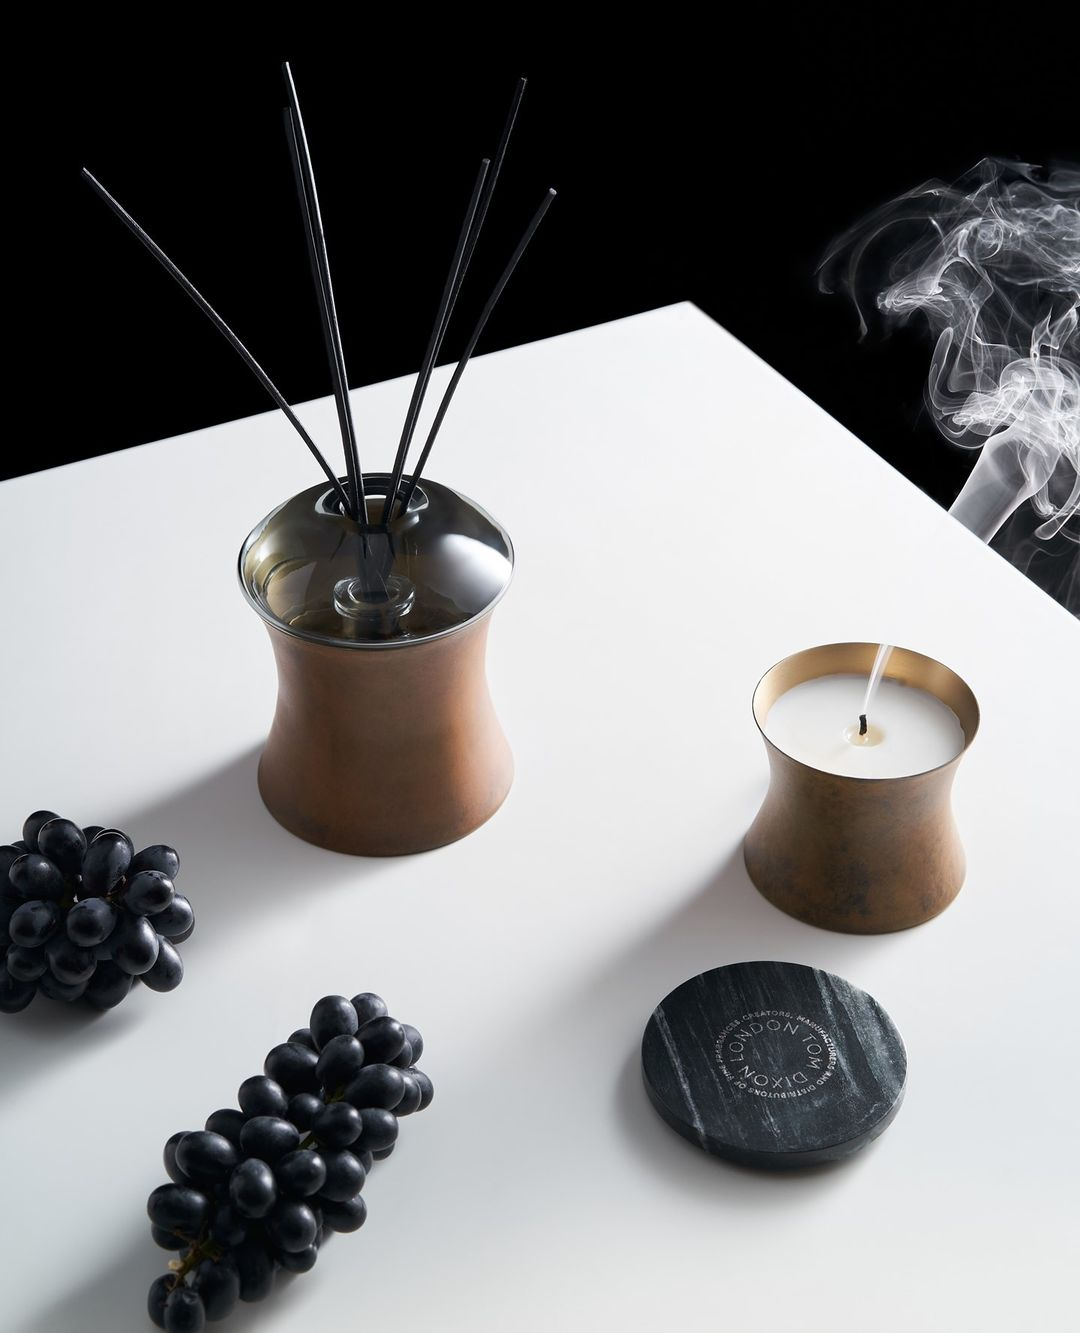 A Tom Dixon lit candle and diffuser